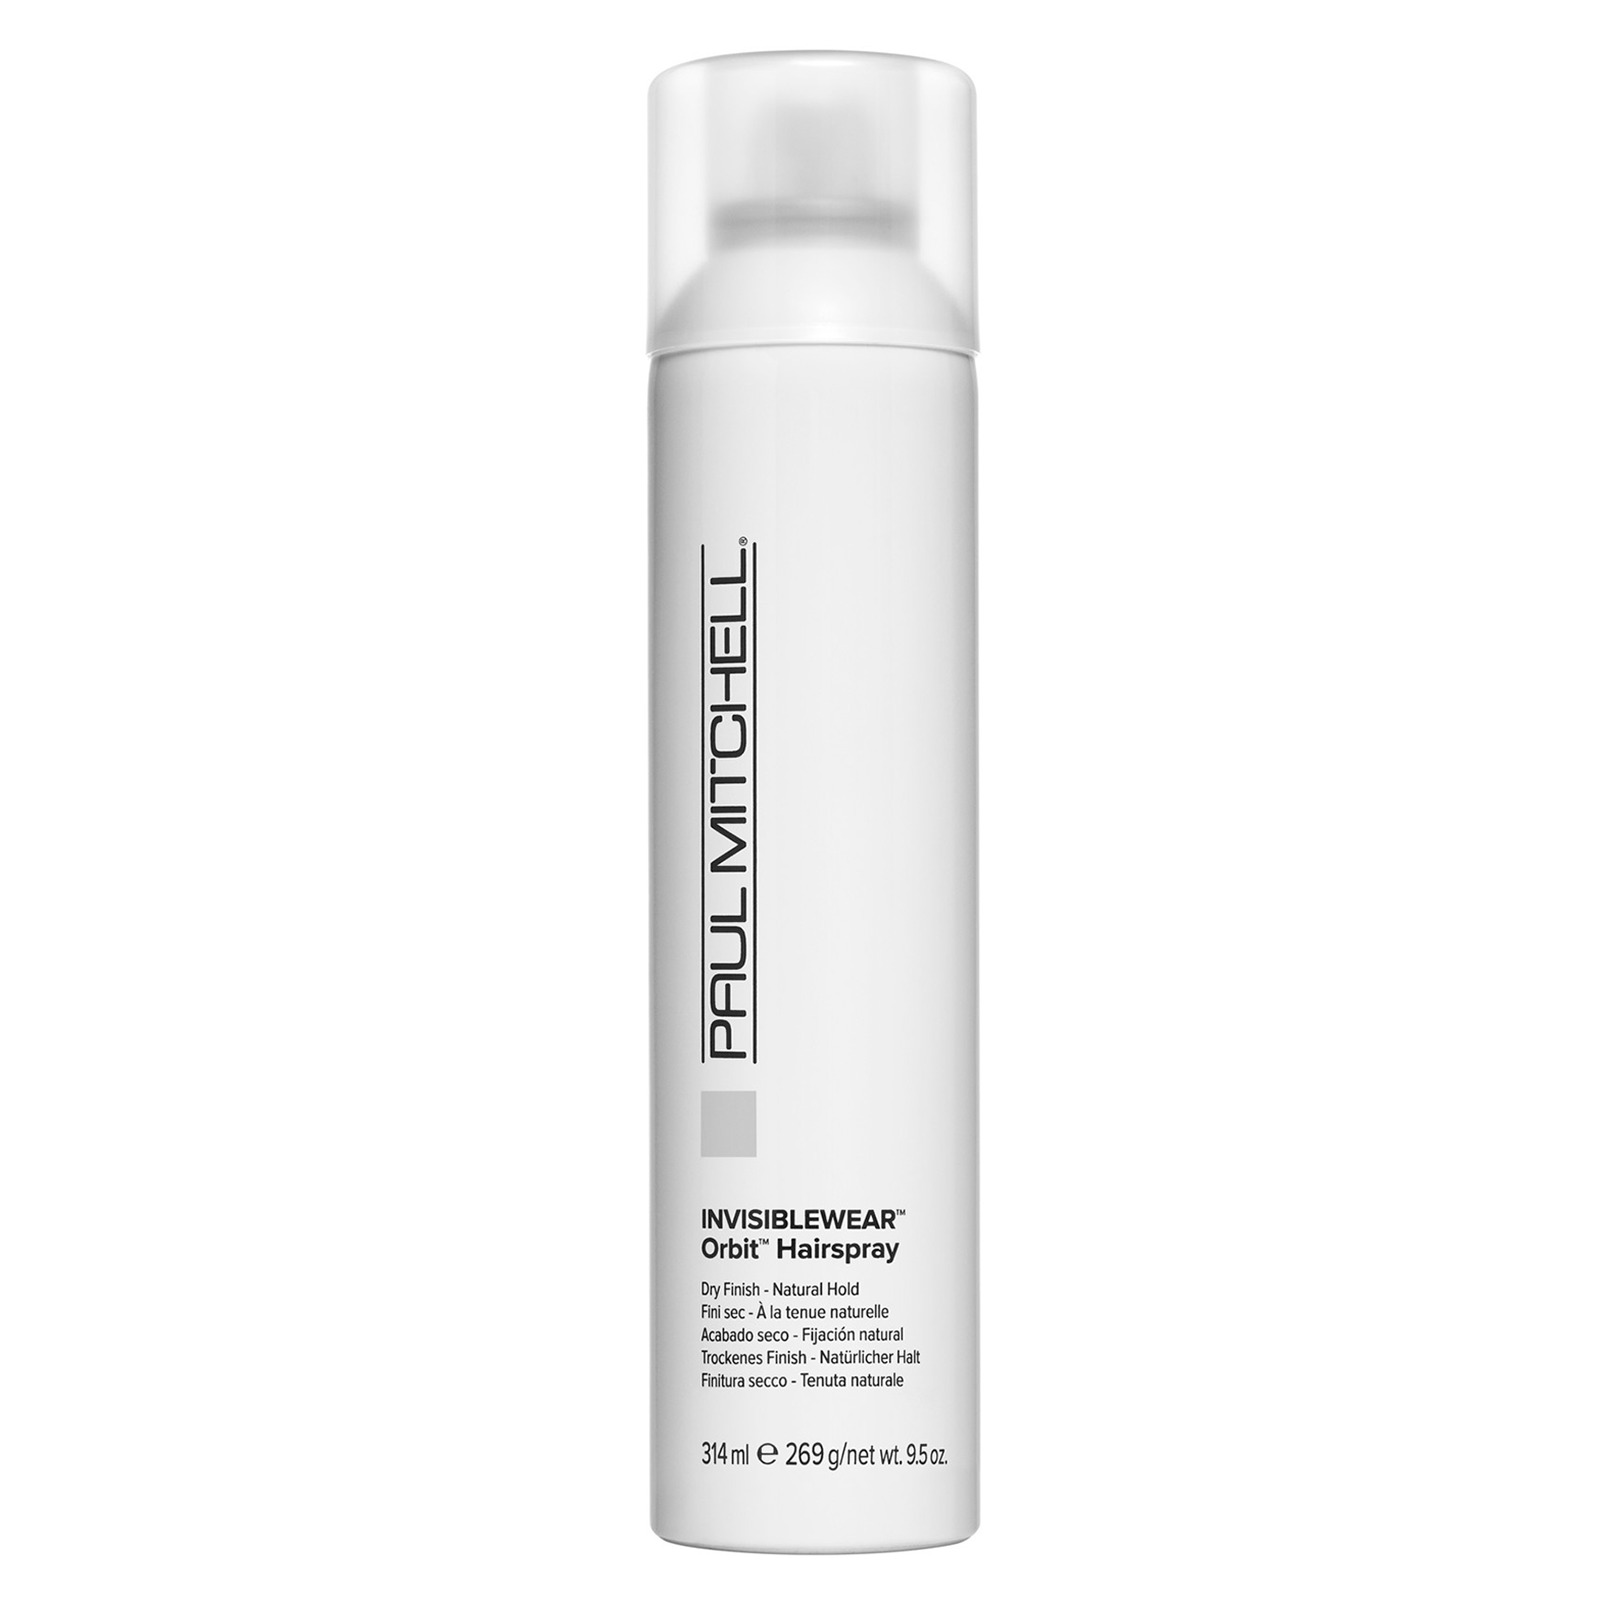 Invisiblewear™ Orbit Finishing Hairspray